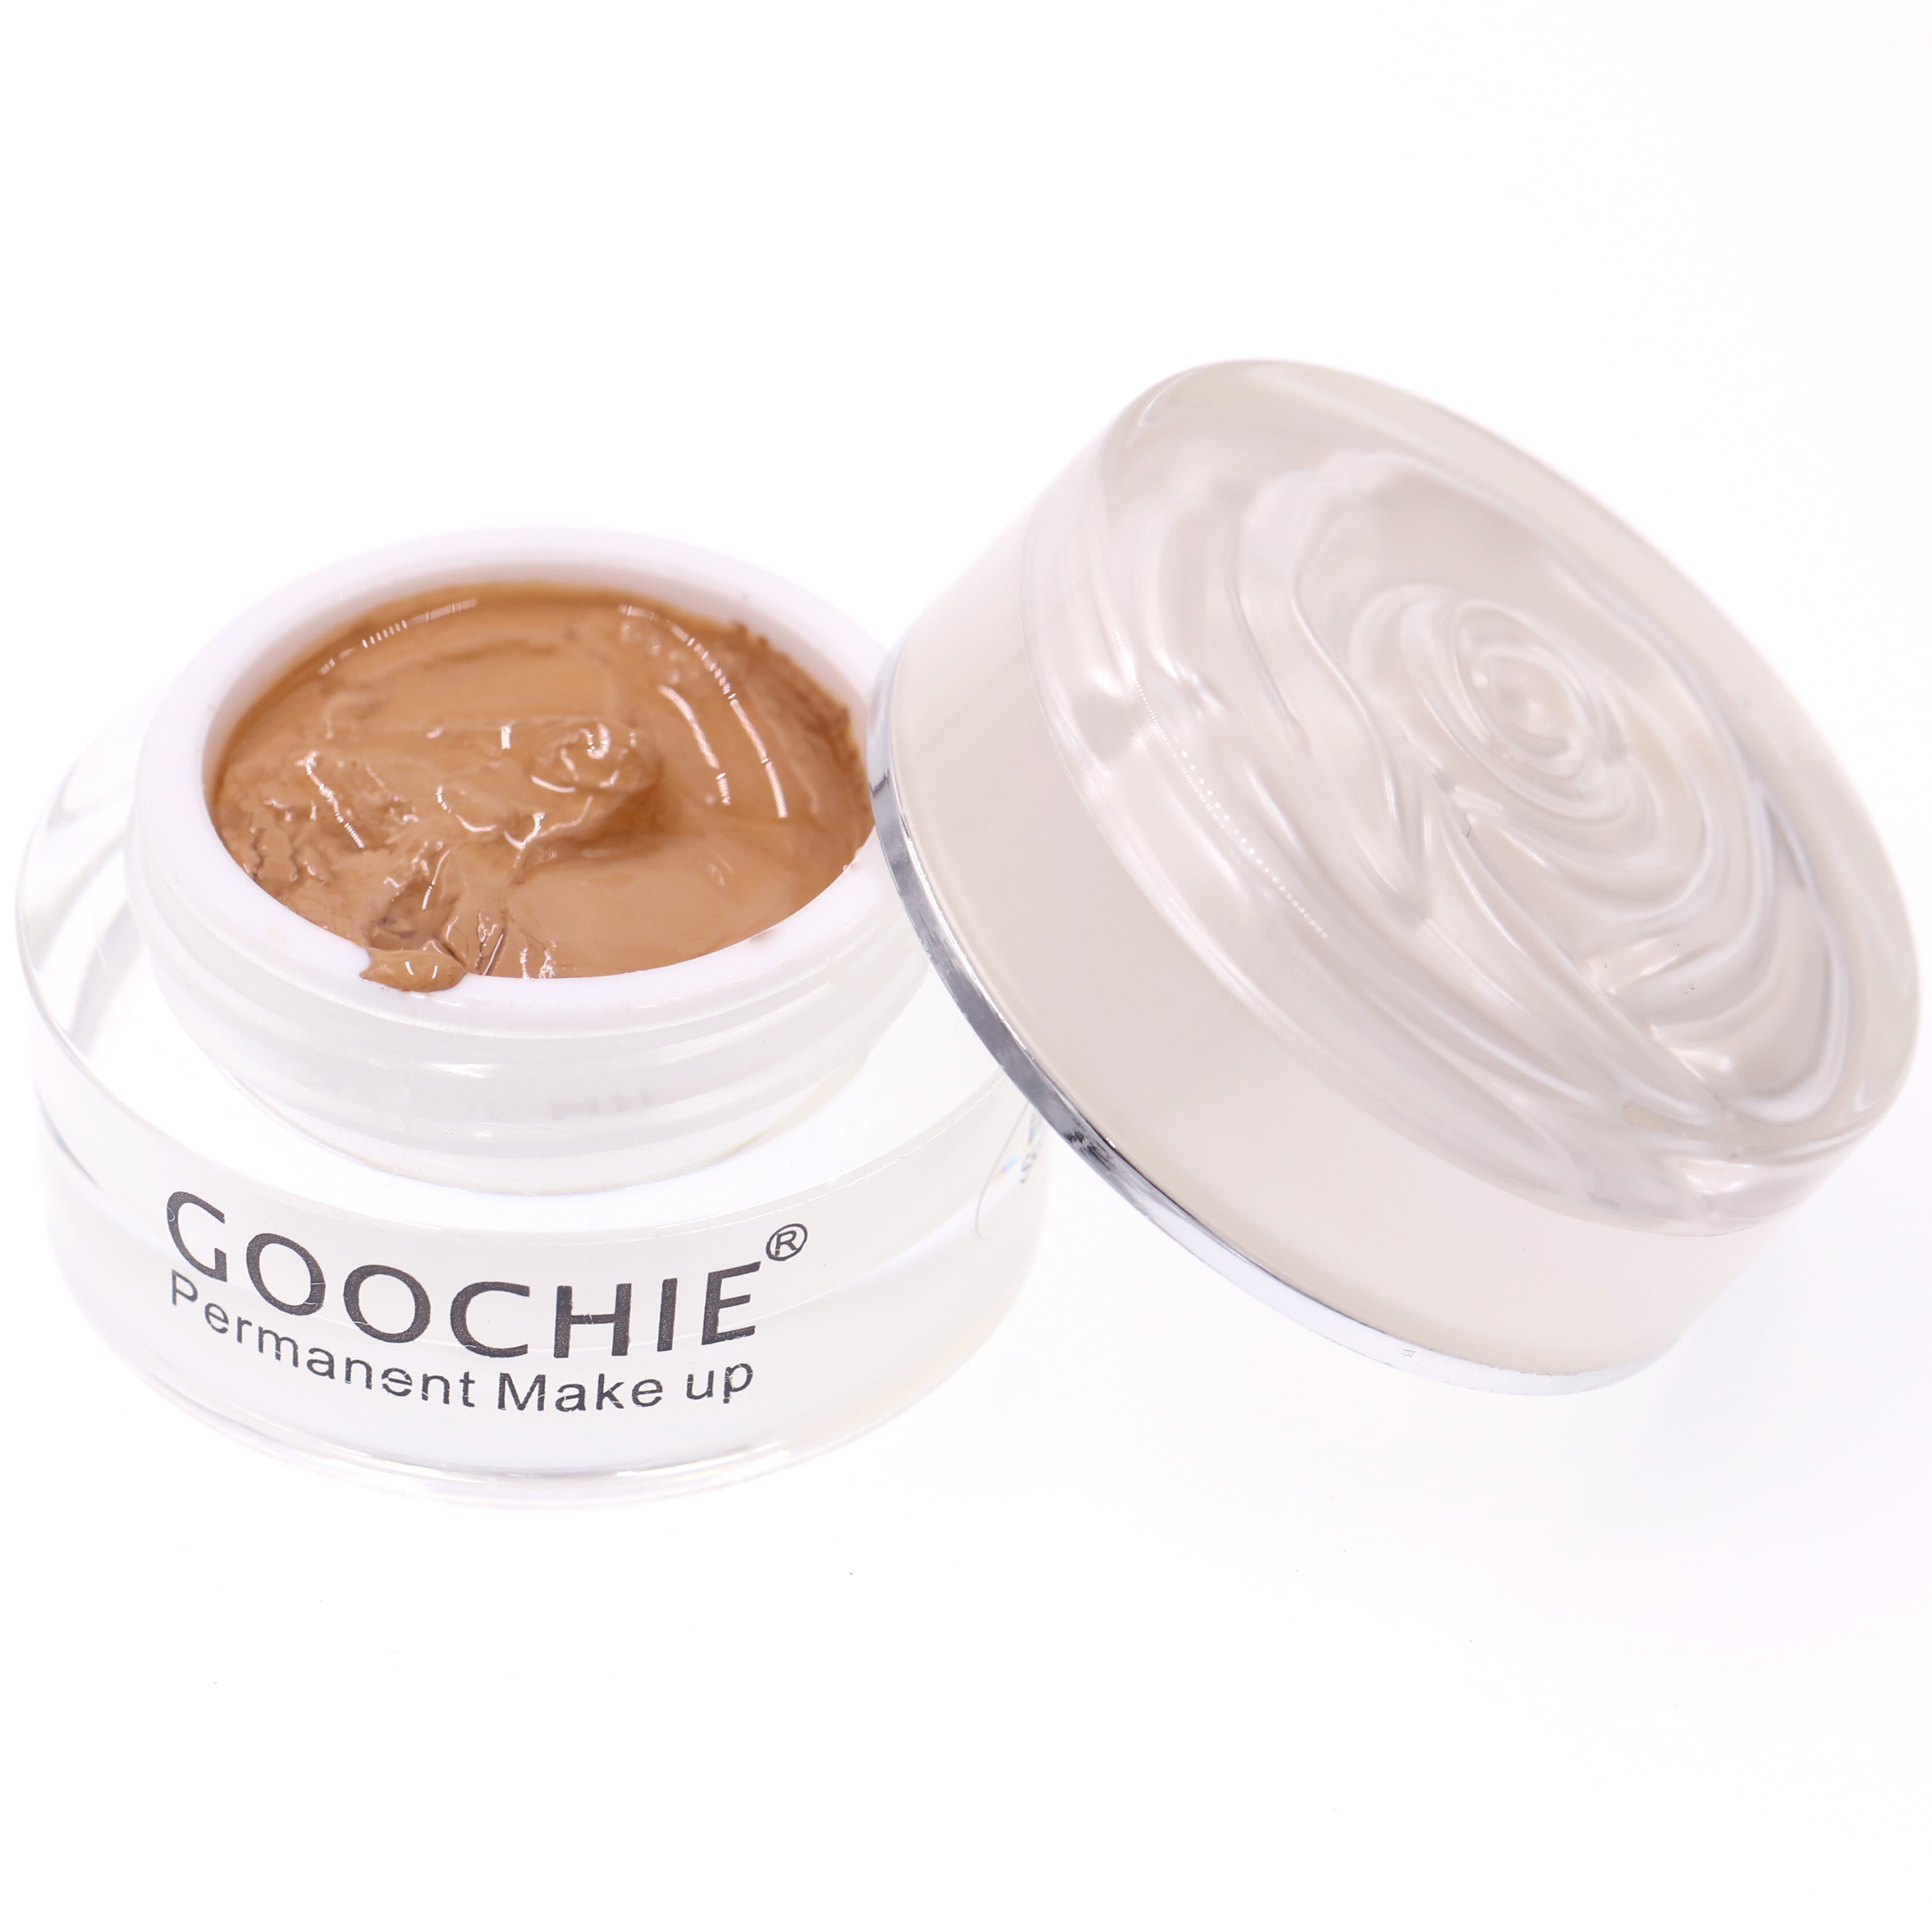 Goochie Permanent Makeup Micro Pigment Cosmetic Color für Microblading Augenbrauen